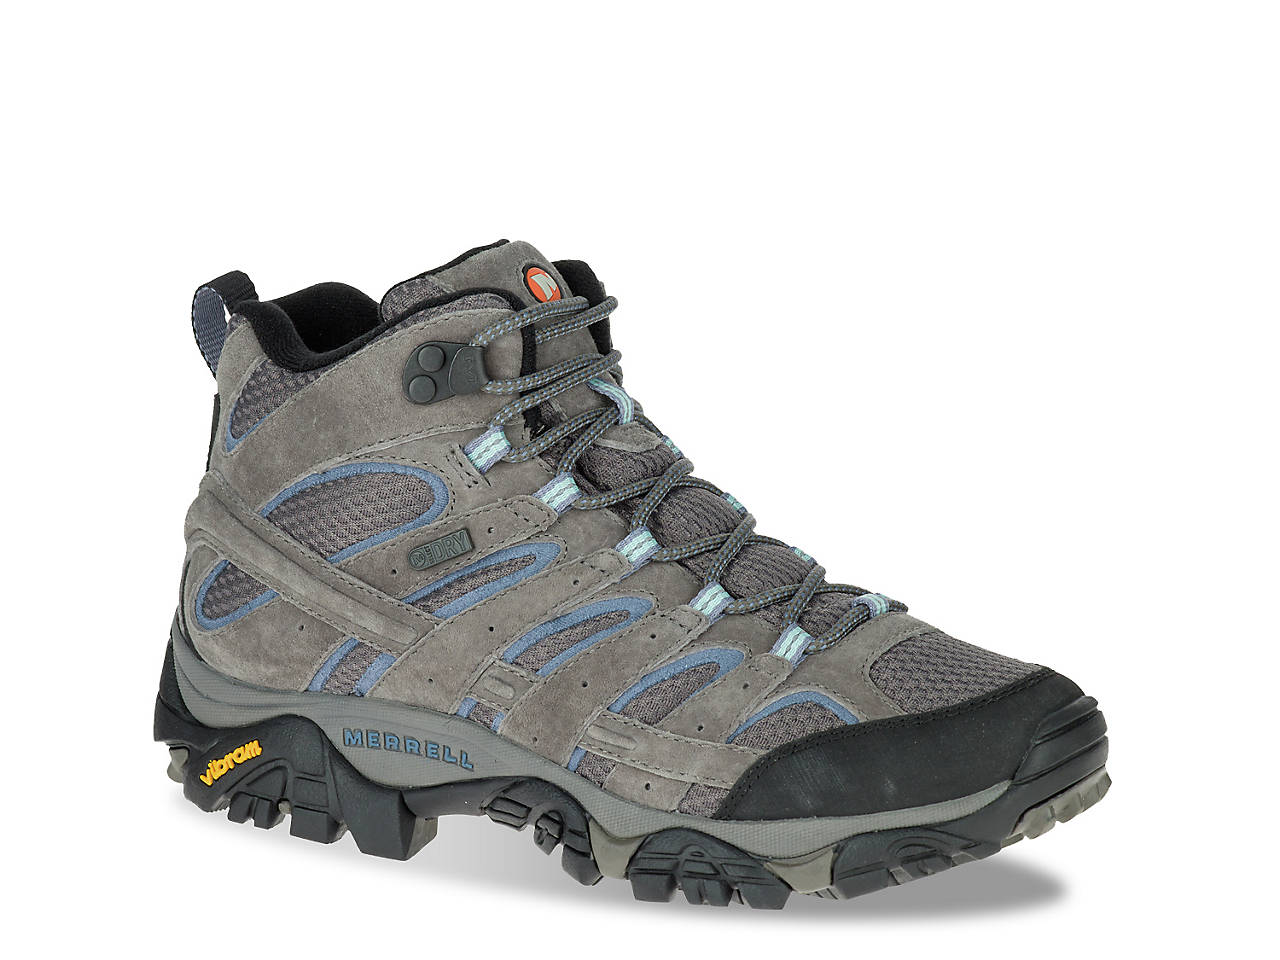 47891af2d6 Merrell MOAB 2 Mid Waterproof Hiking Boot Women's Shoes | DSW